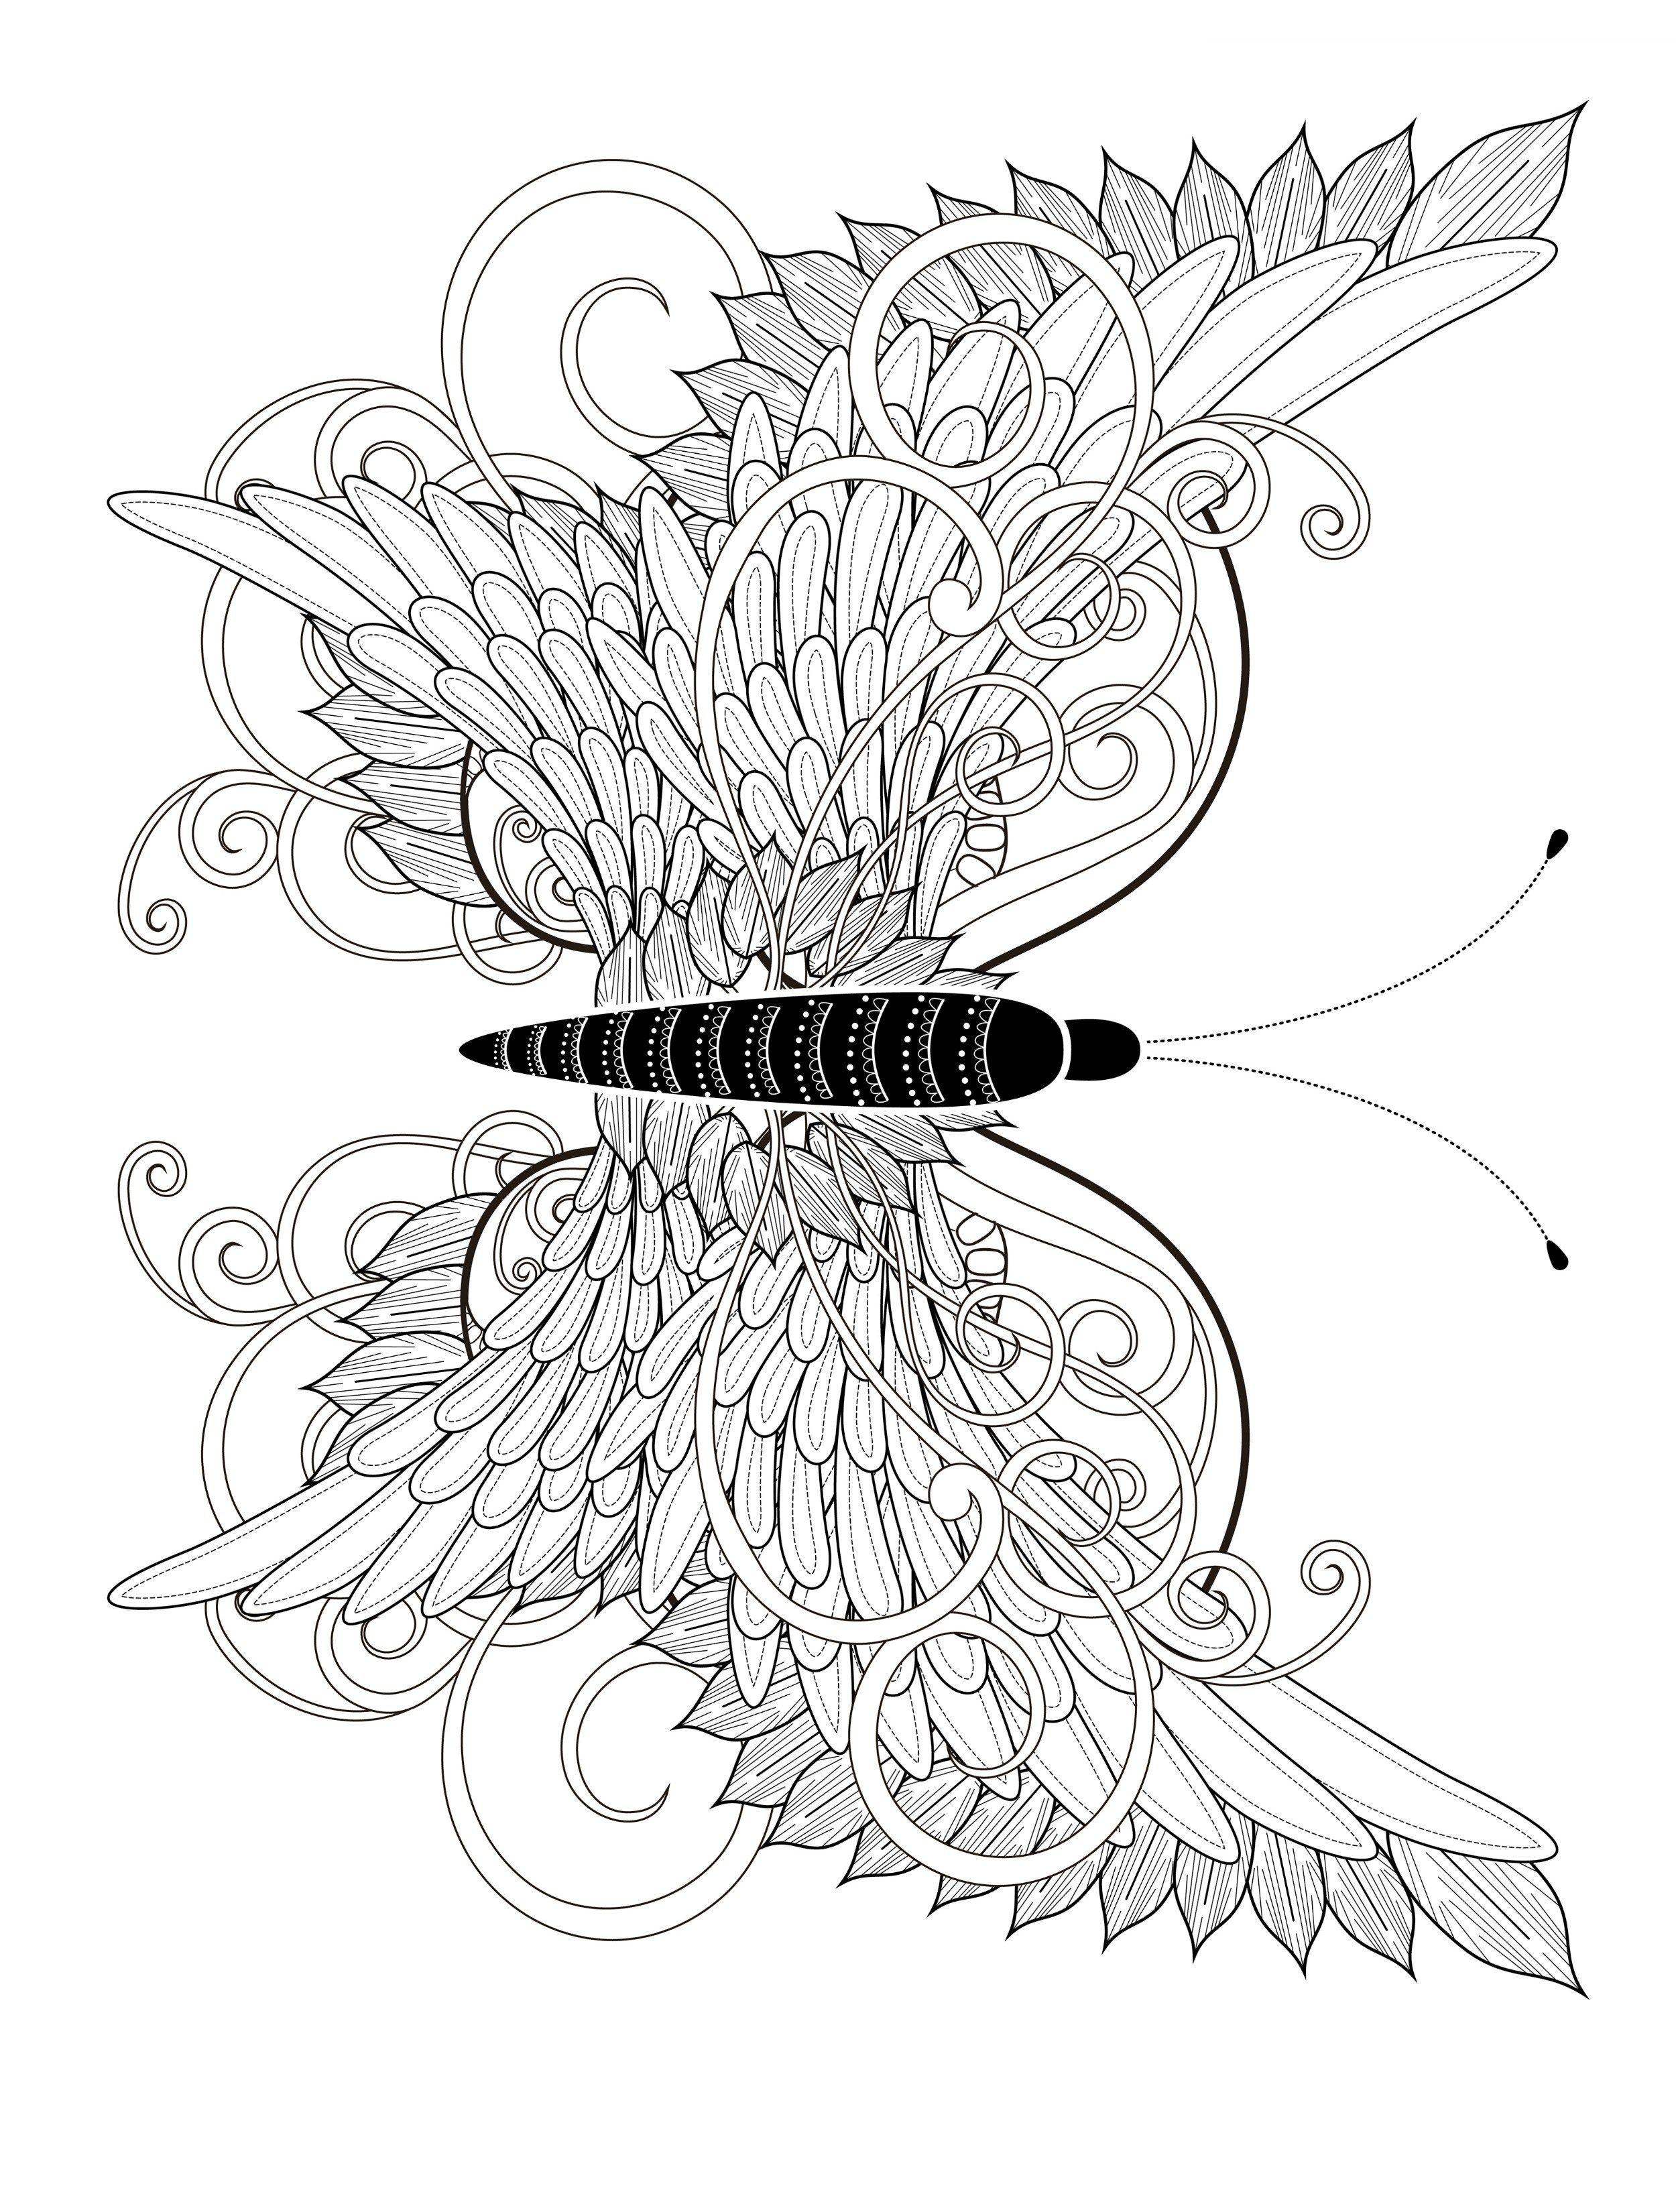 23 Free Printable Insect Animal Adult Coloring Pages With